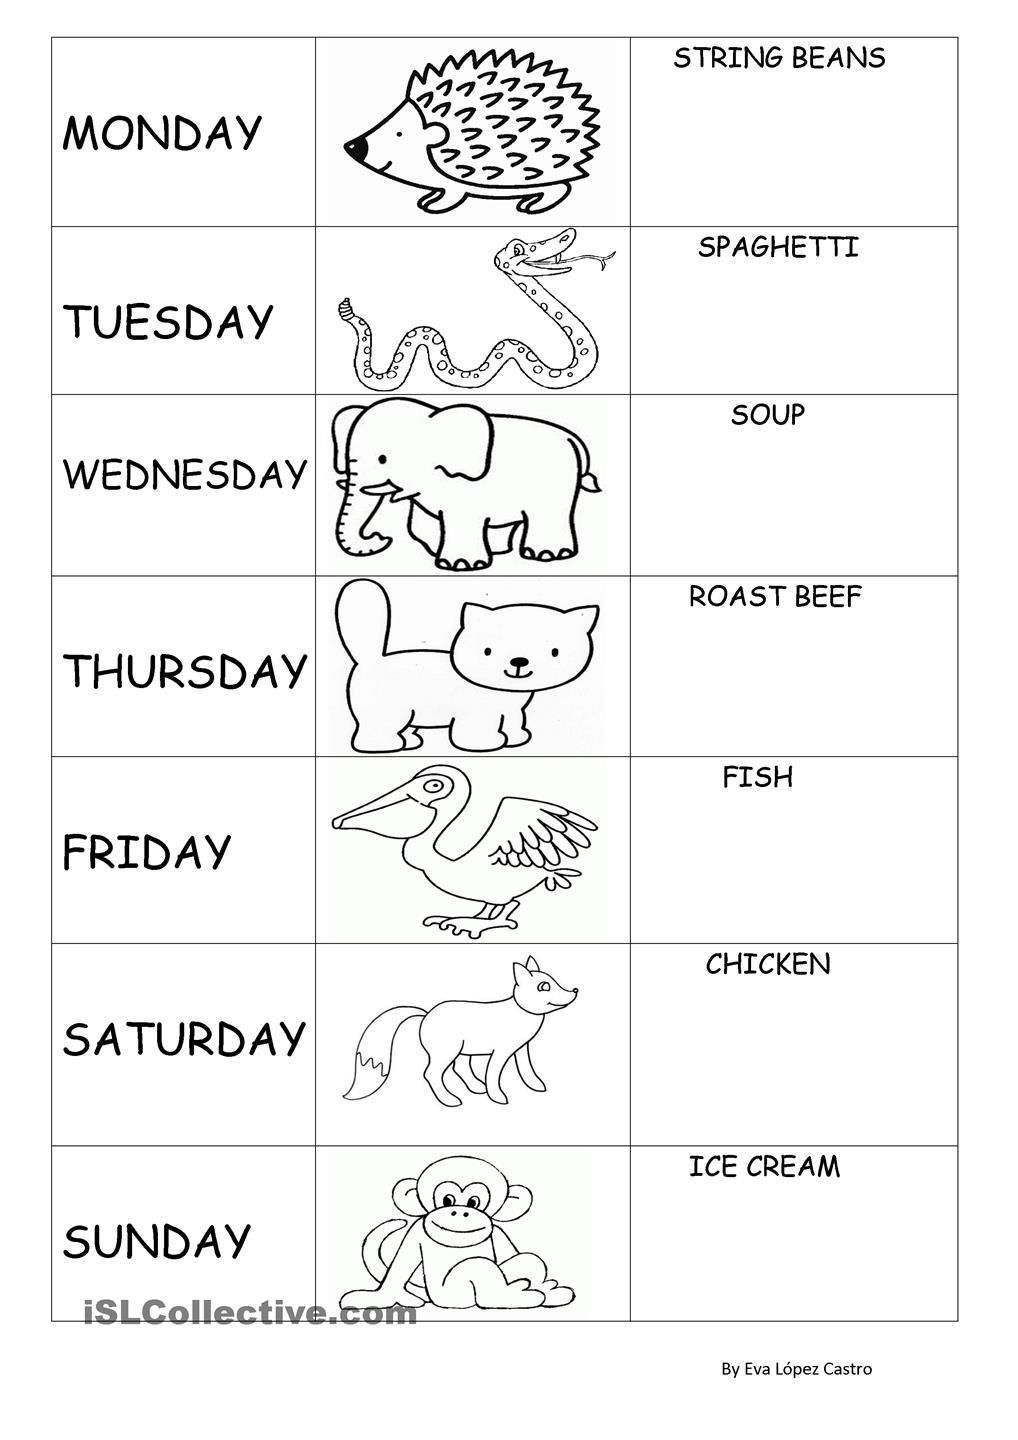 Today is Monday Eric carle activities, Lesson plans for